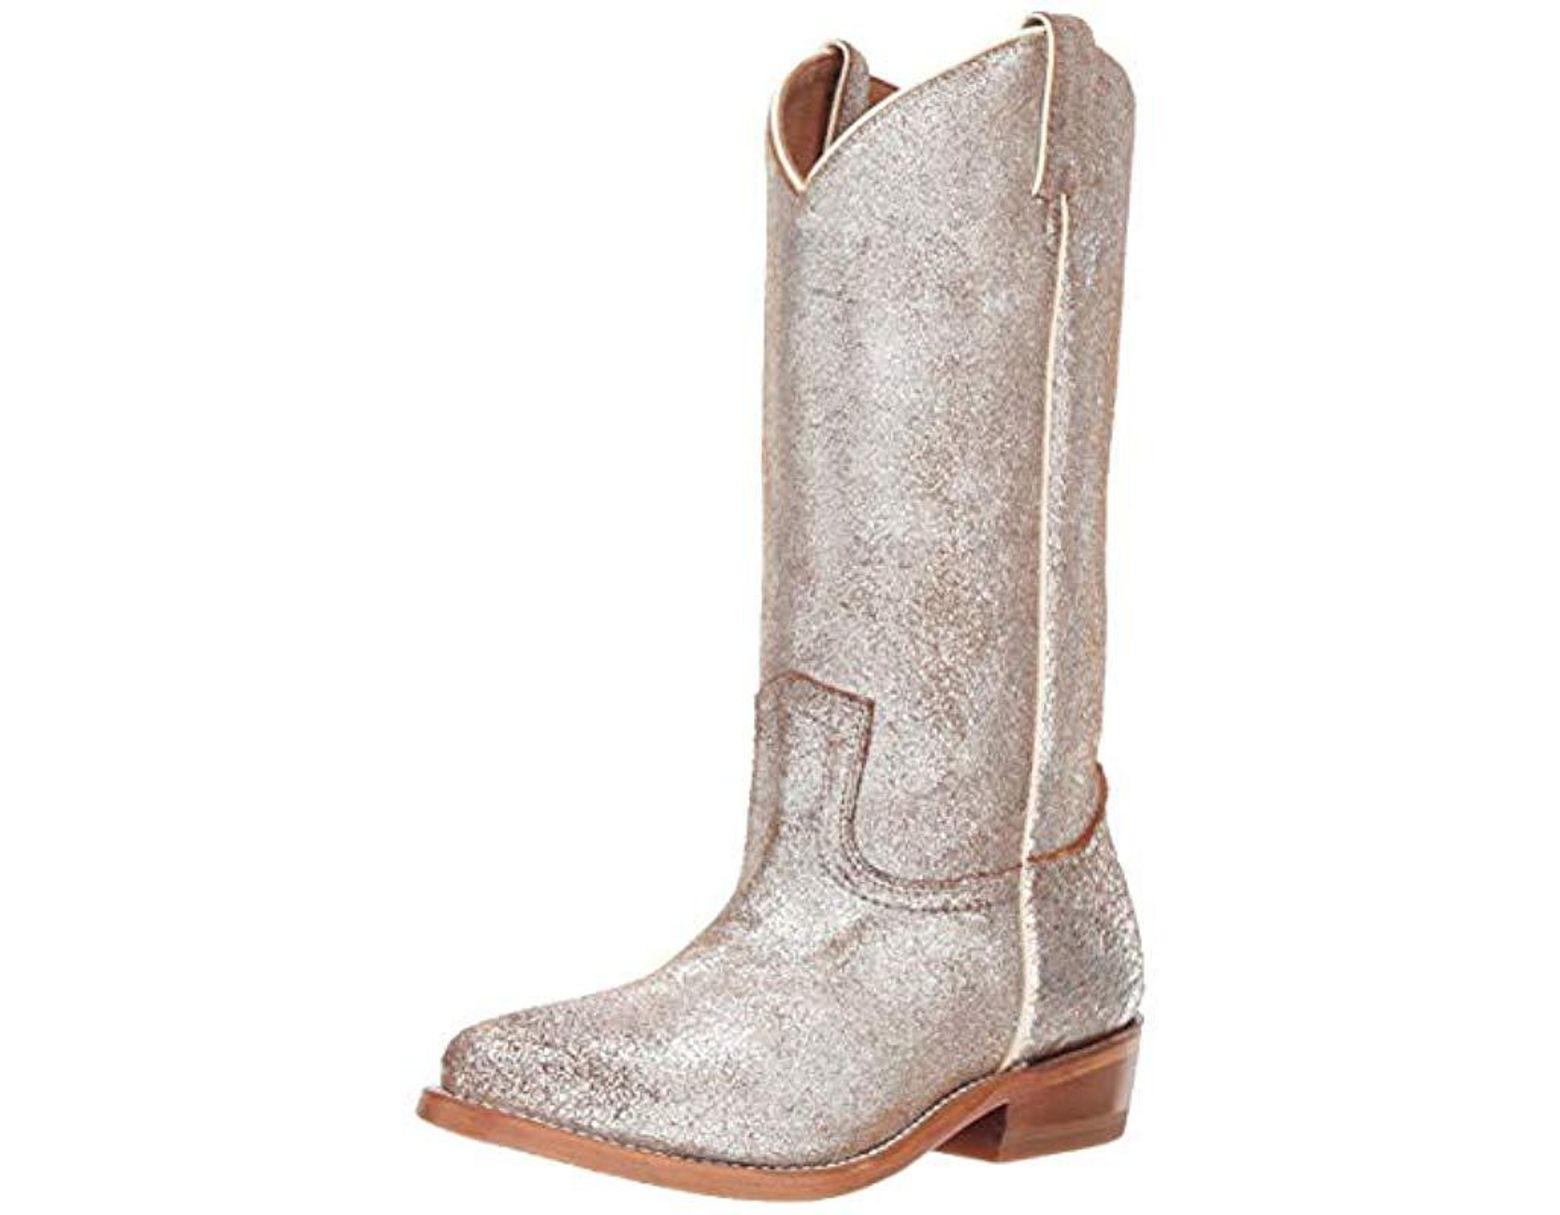 1a6db3e5f0f Frye - Multicolor Billy Pull-on Boot - Lyst